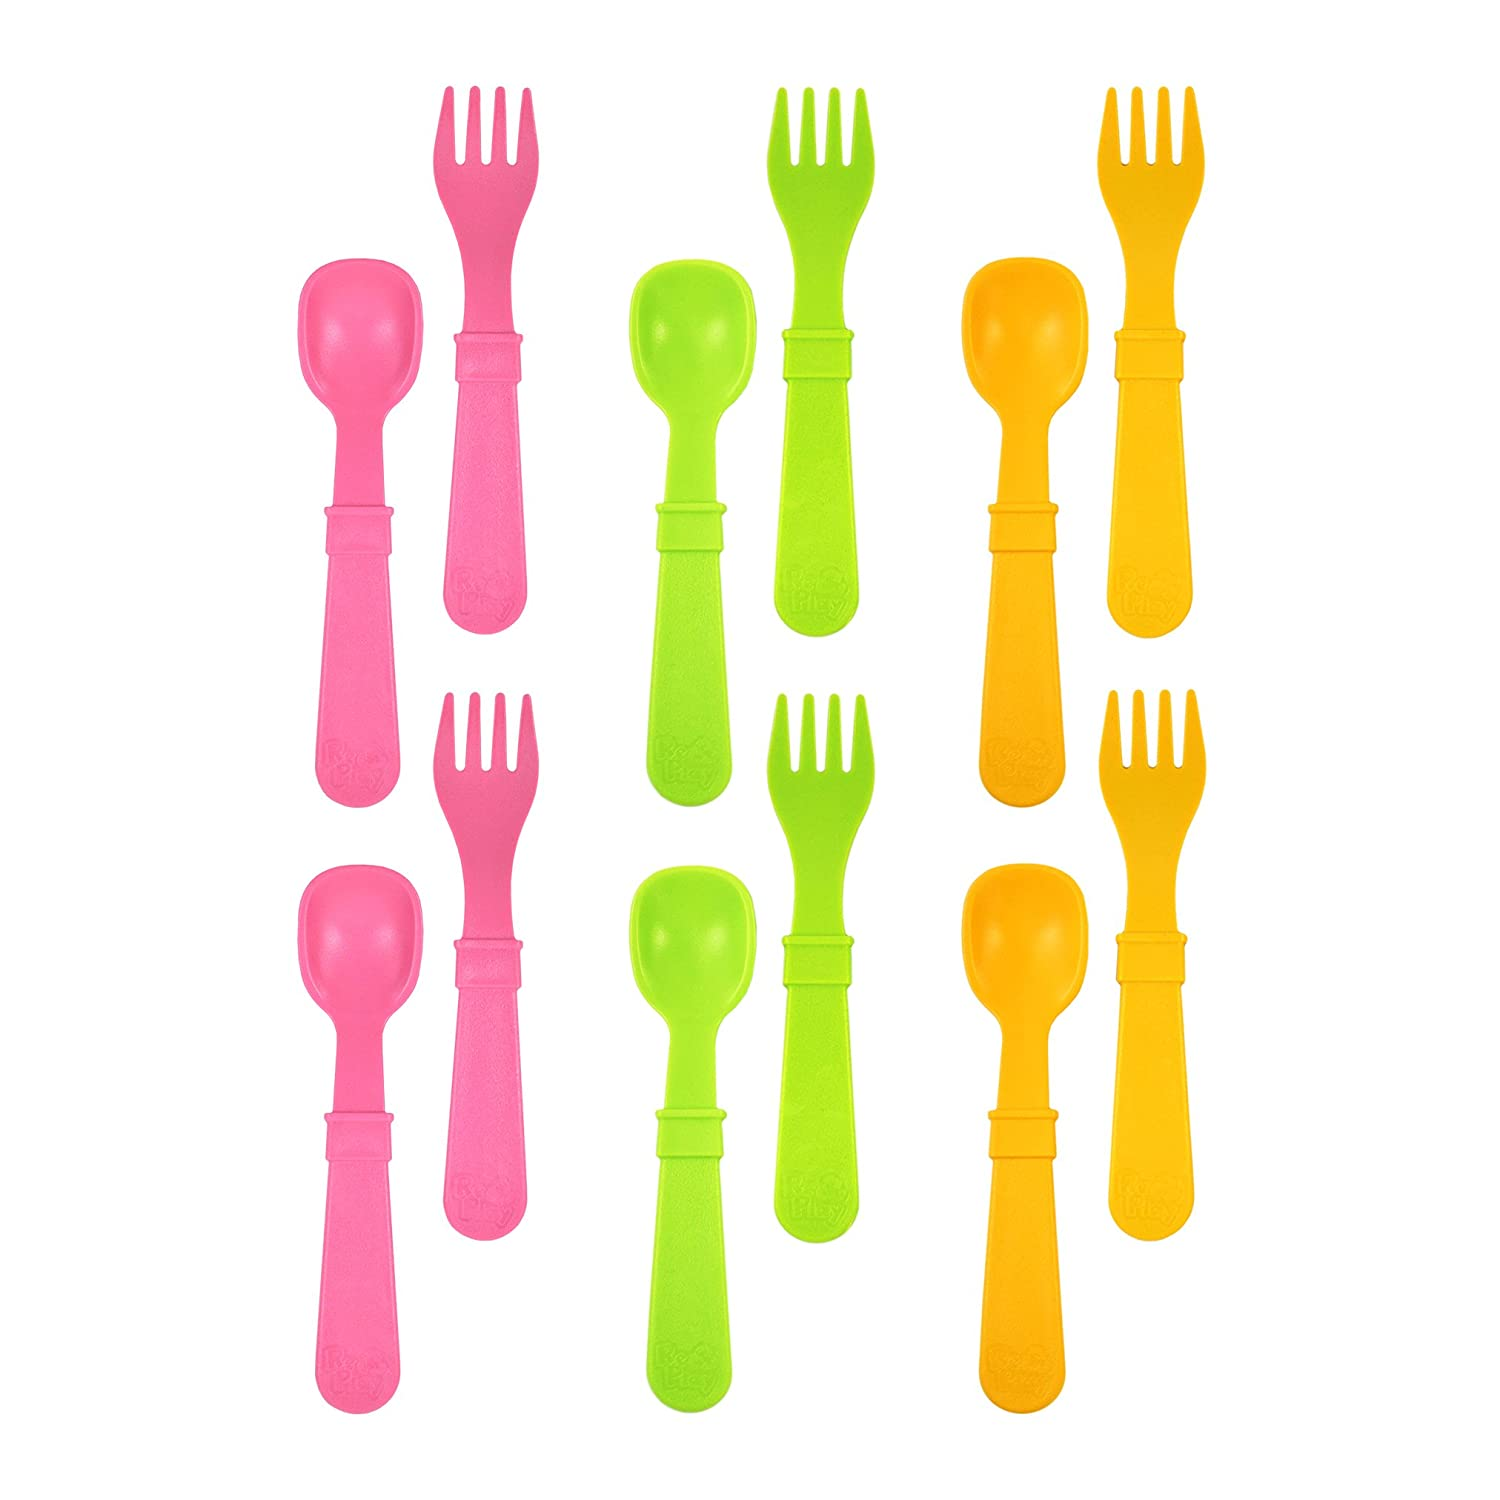 Baby Pink Bright Pink Purple Toddler Princess Child Feeding 6 Spoons//6 Forks Re-Play Made in USA 12pk Toddler Feeding Utensils Spoon and Fork Set for Easy Baby